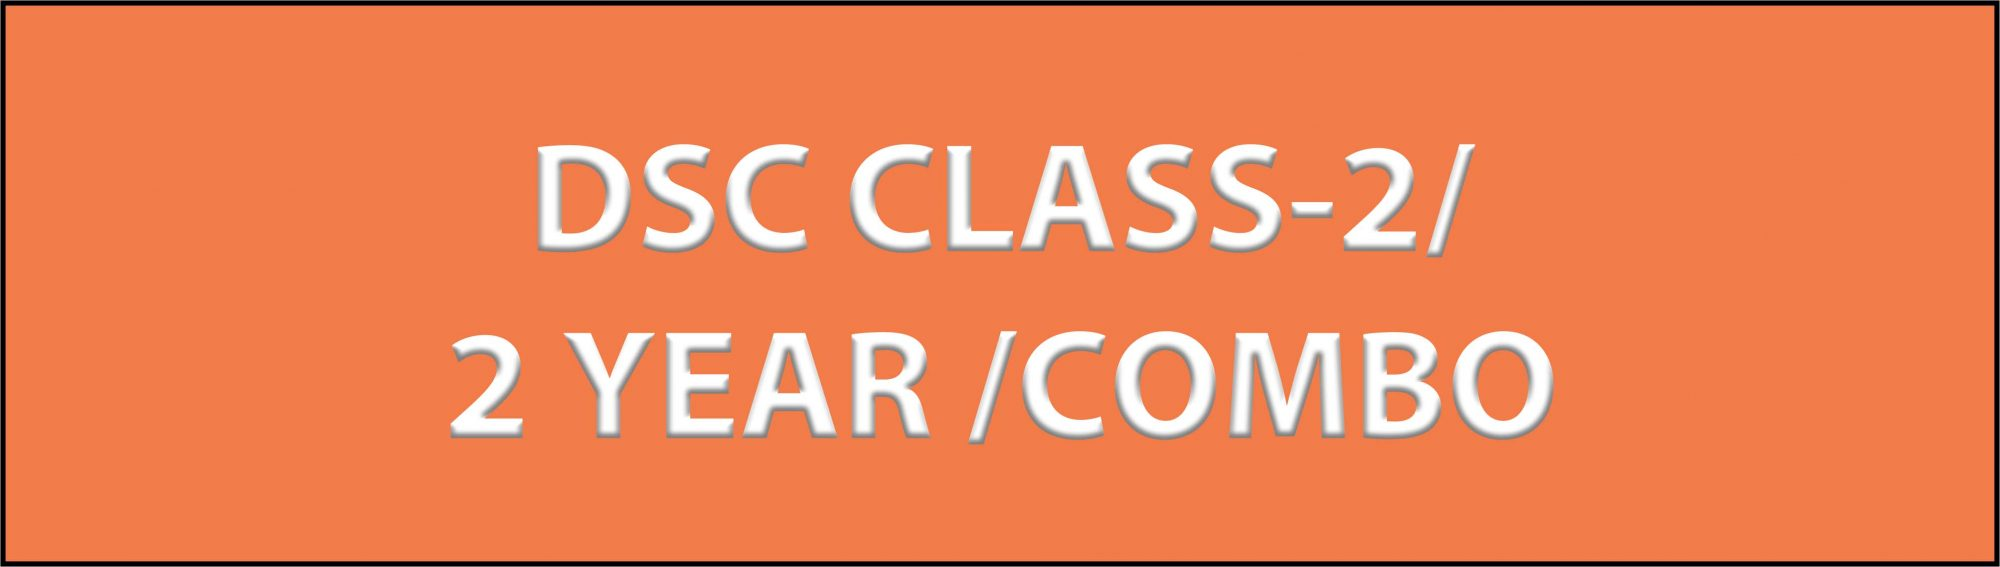 DSC CLASS 2 2 YEAR COMBO scaled